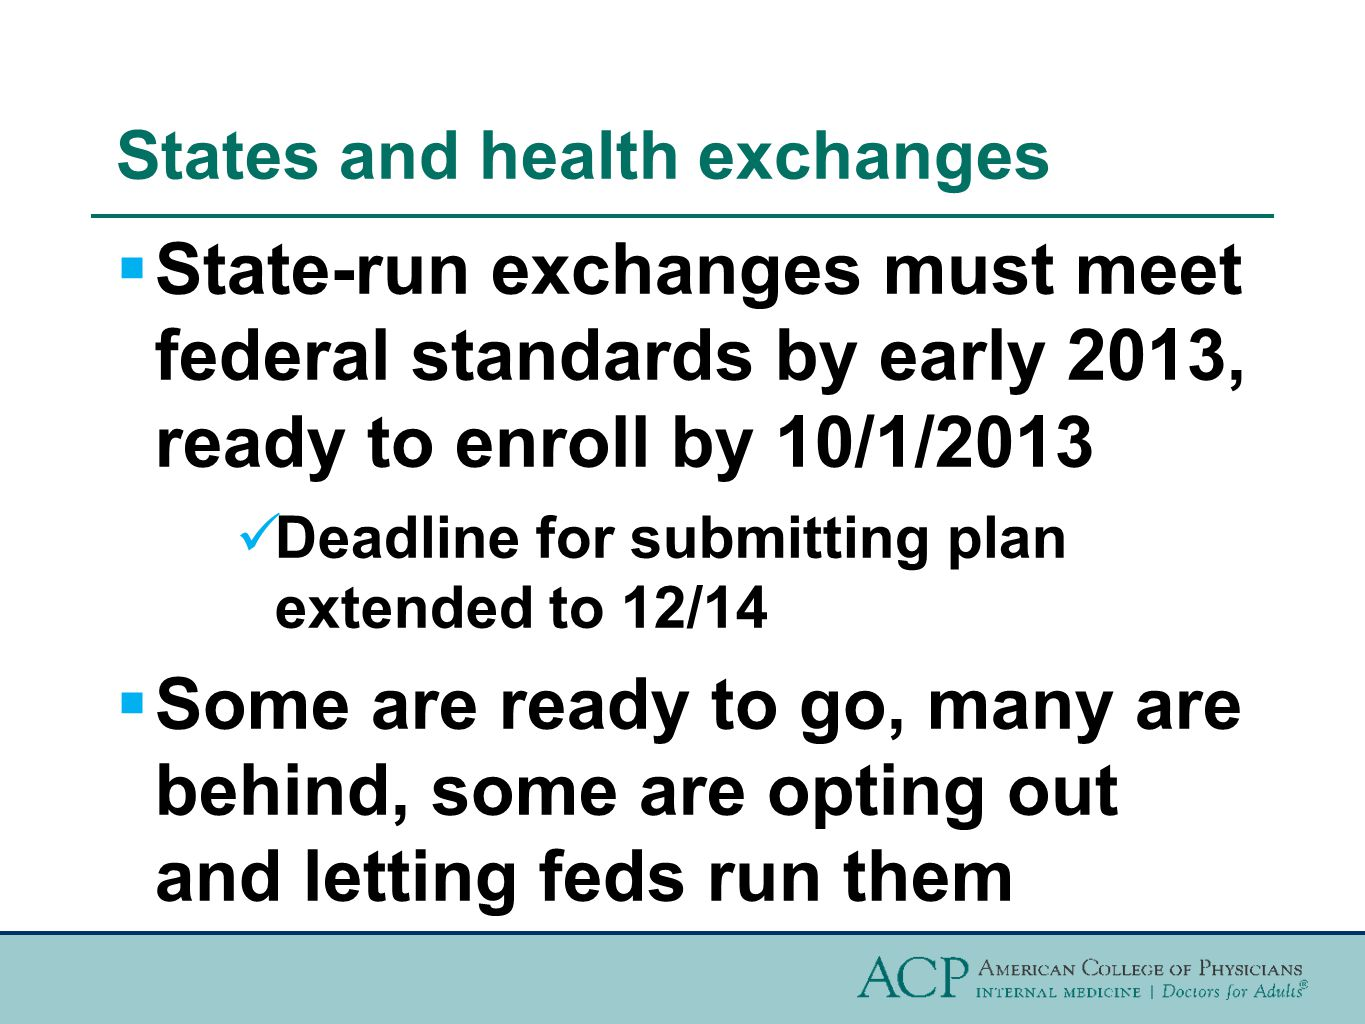 States and health exchanges  State-run exchanges must meet federal standards by early 2013, ready to enroll by 10/1/2013 Deadline for submitting plan extended to 12/14  Some are ready to go, many are behind, some are opting out and letting feds run them